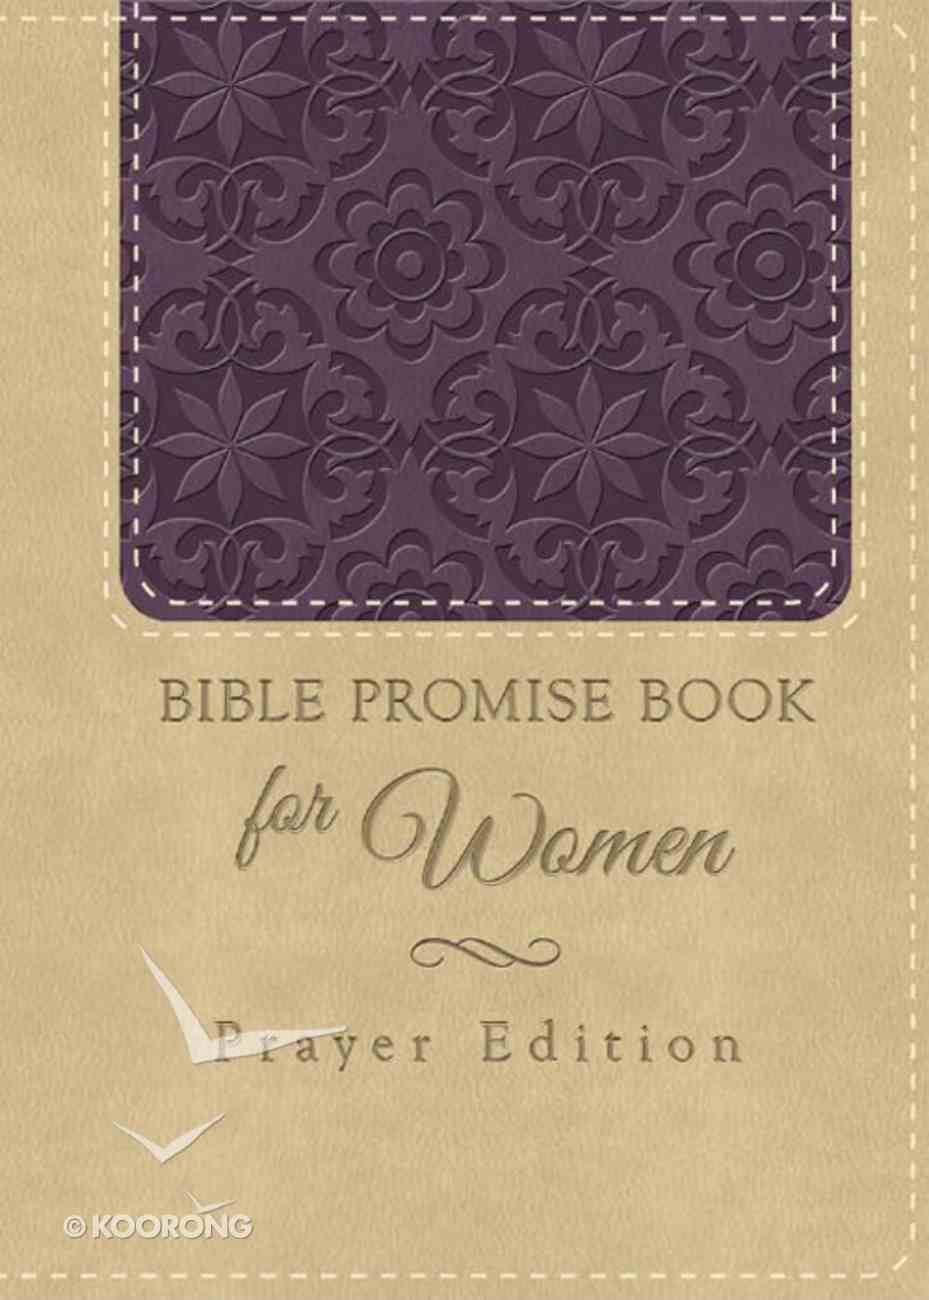 Bible Promise Book For Women (Prayer Edition) eBook